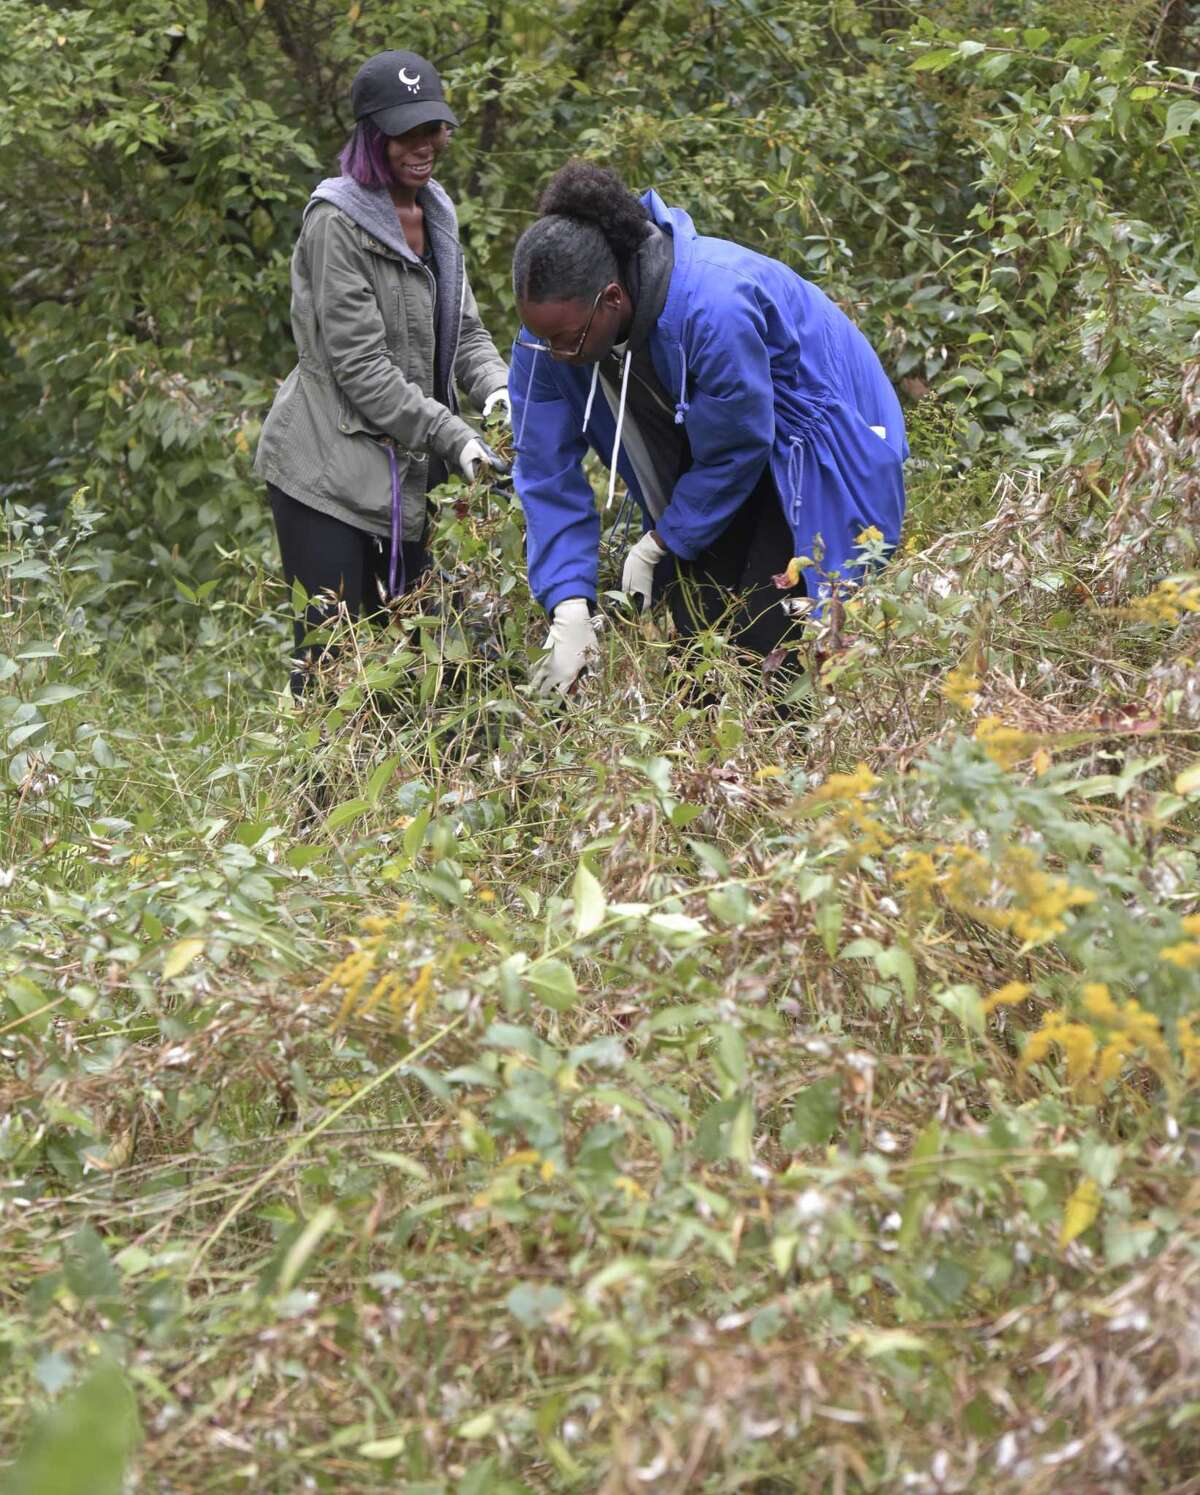 Franaja Payne-Smith, right, and Asia Henderson work along the Norwalk River Valley Trail clearing debris and invasive plants on September 30, 2017, in Ridgefield, Conn.